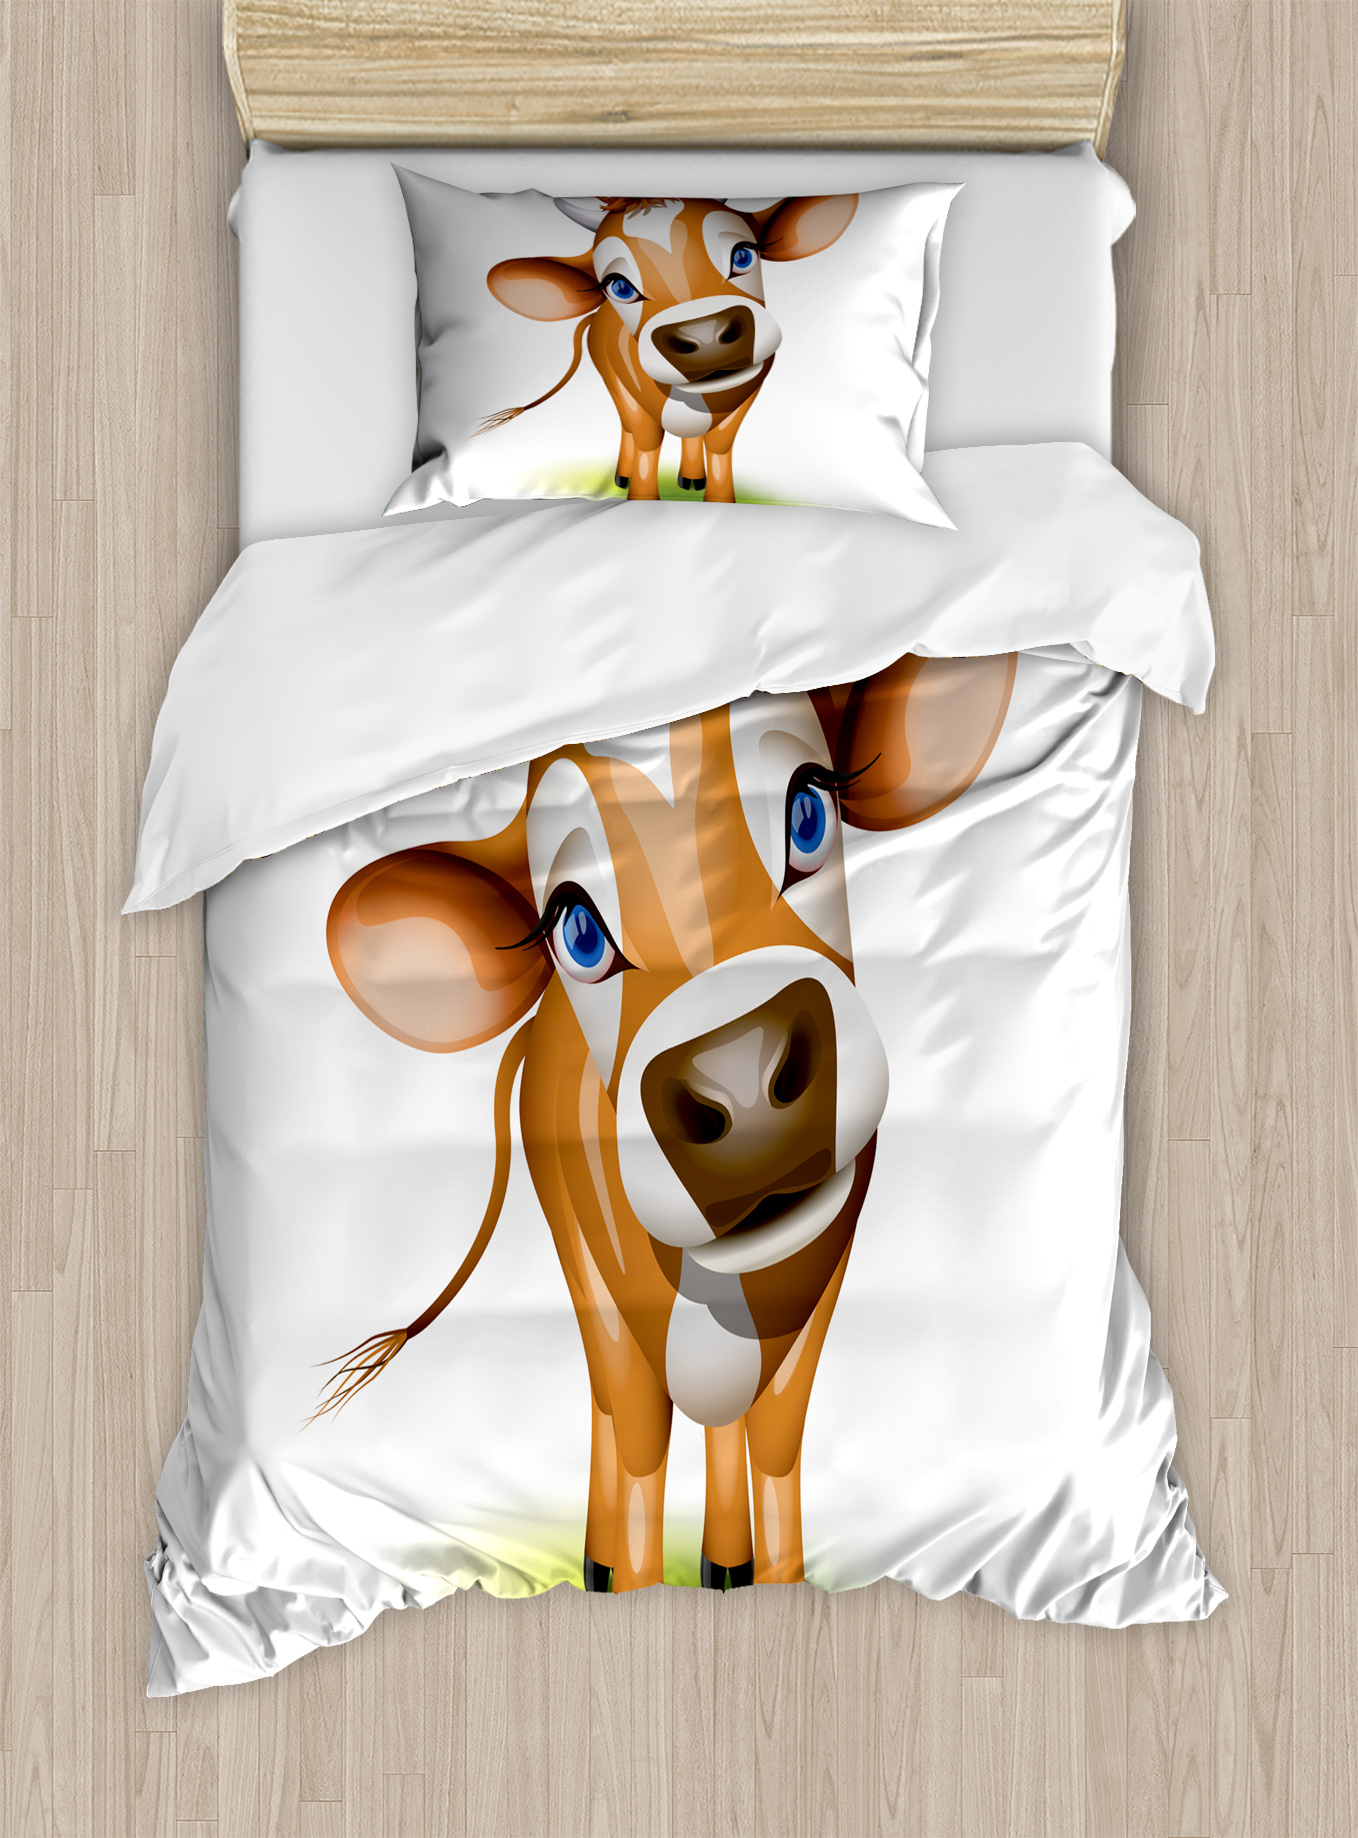 Baby Duvet Cover Set, Digitally Composed Cow with Beautiful Captivating Eyes Livestock Theme, Decorative... by Kozmos